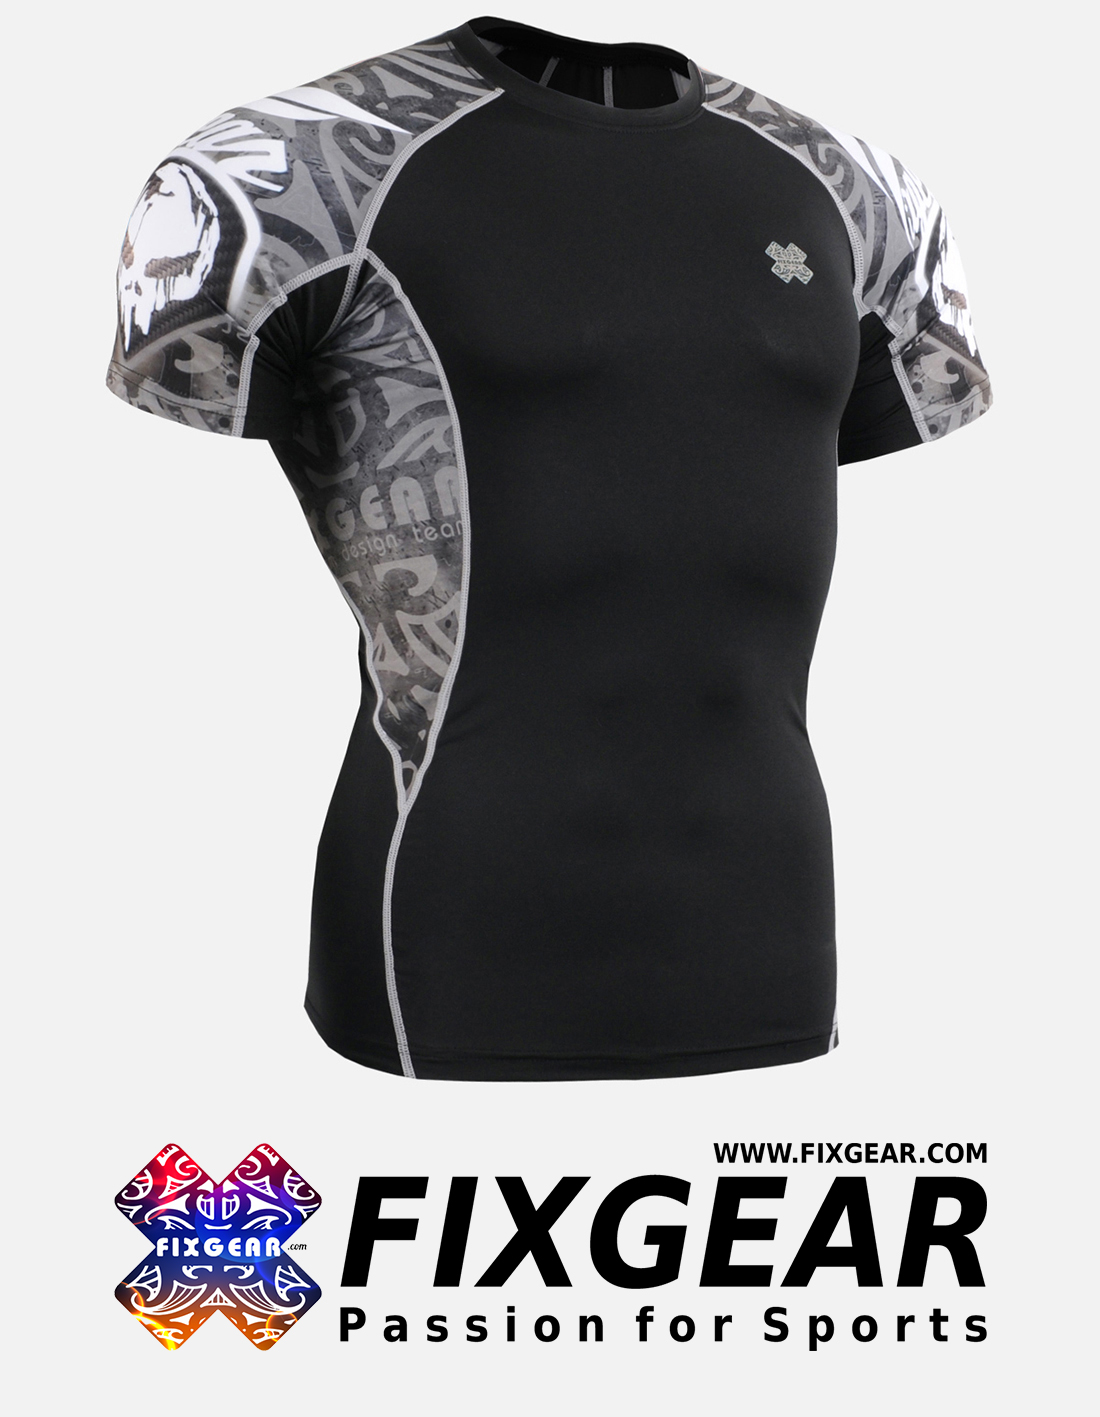 FIXGEAR C2S-B43 Compression Base Layer Shirt Short Sleeve